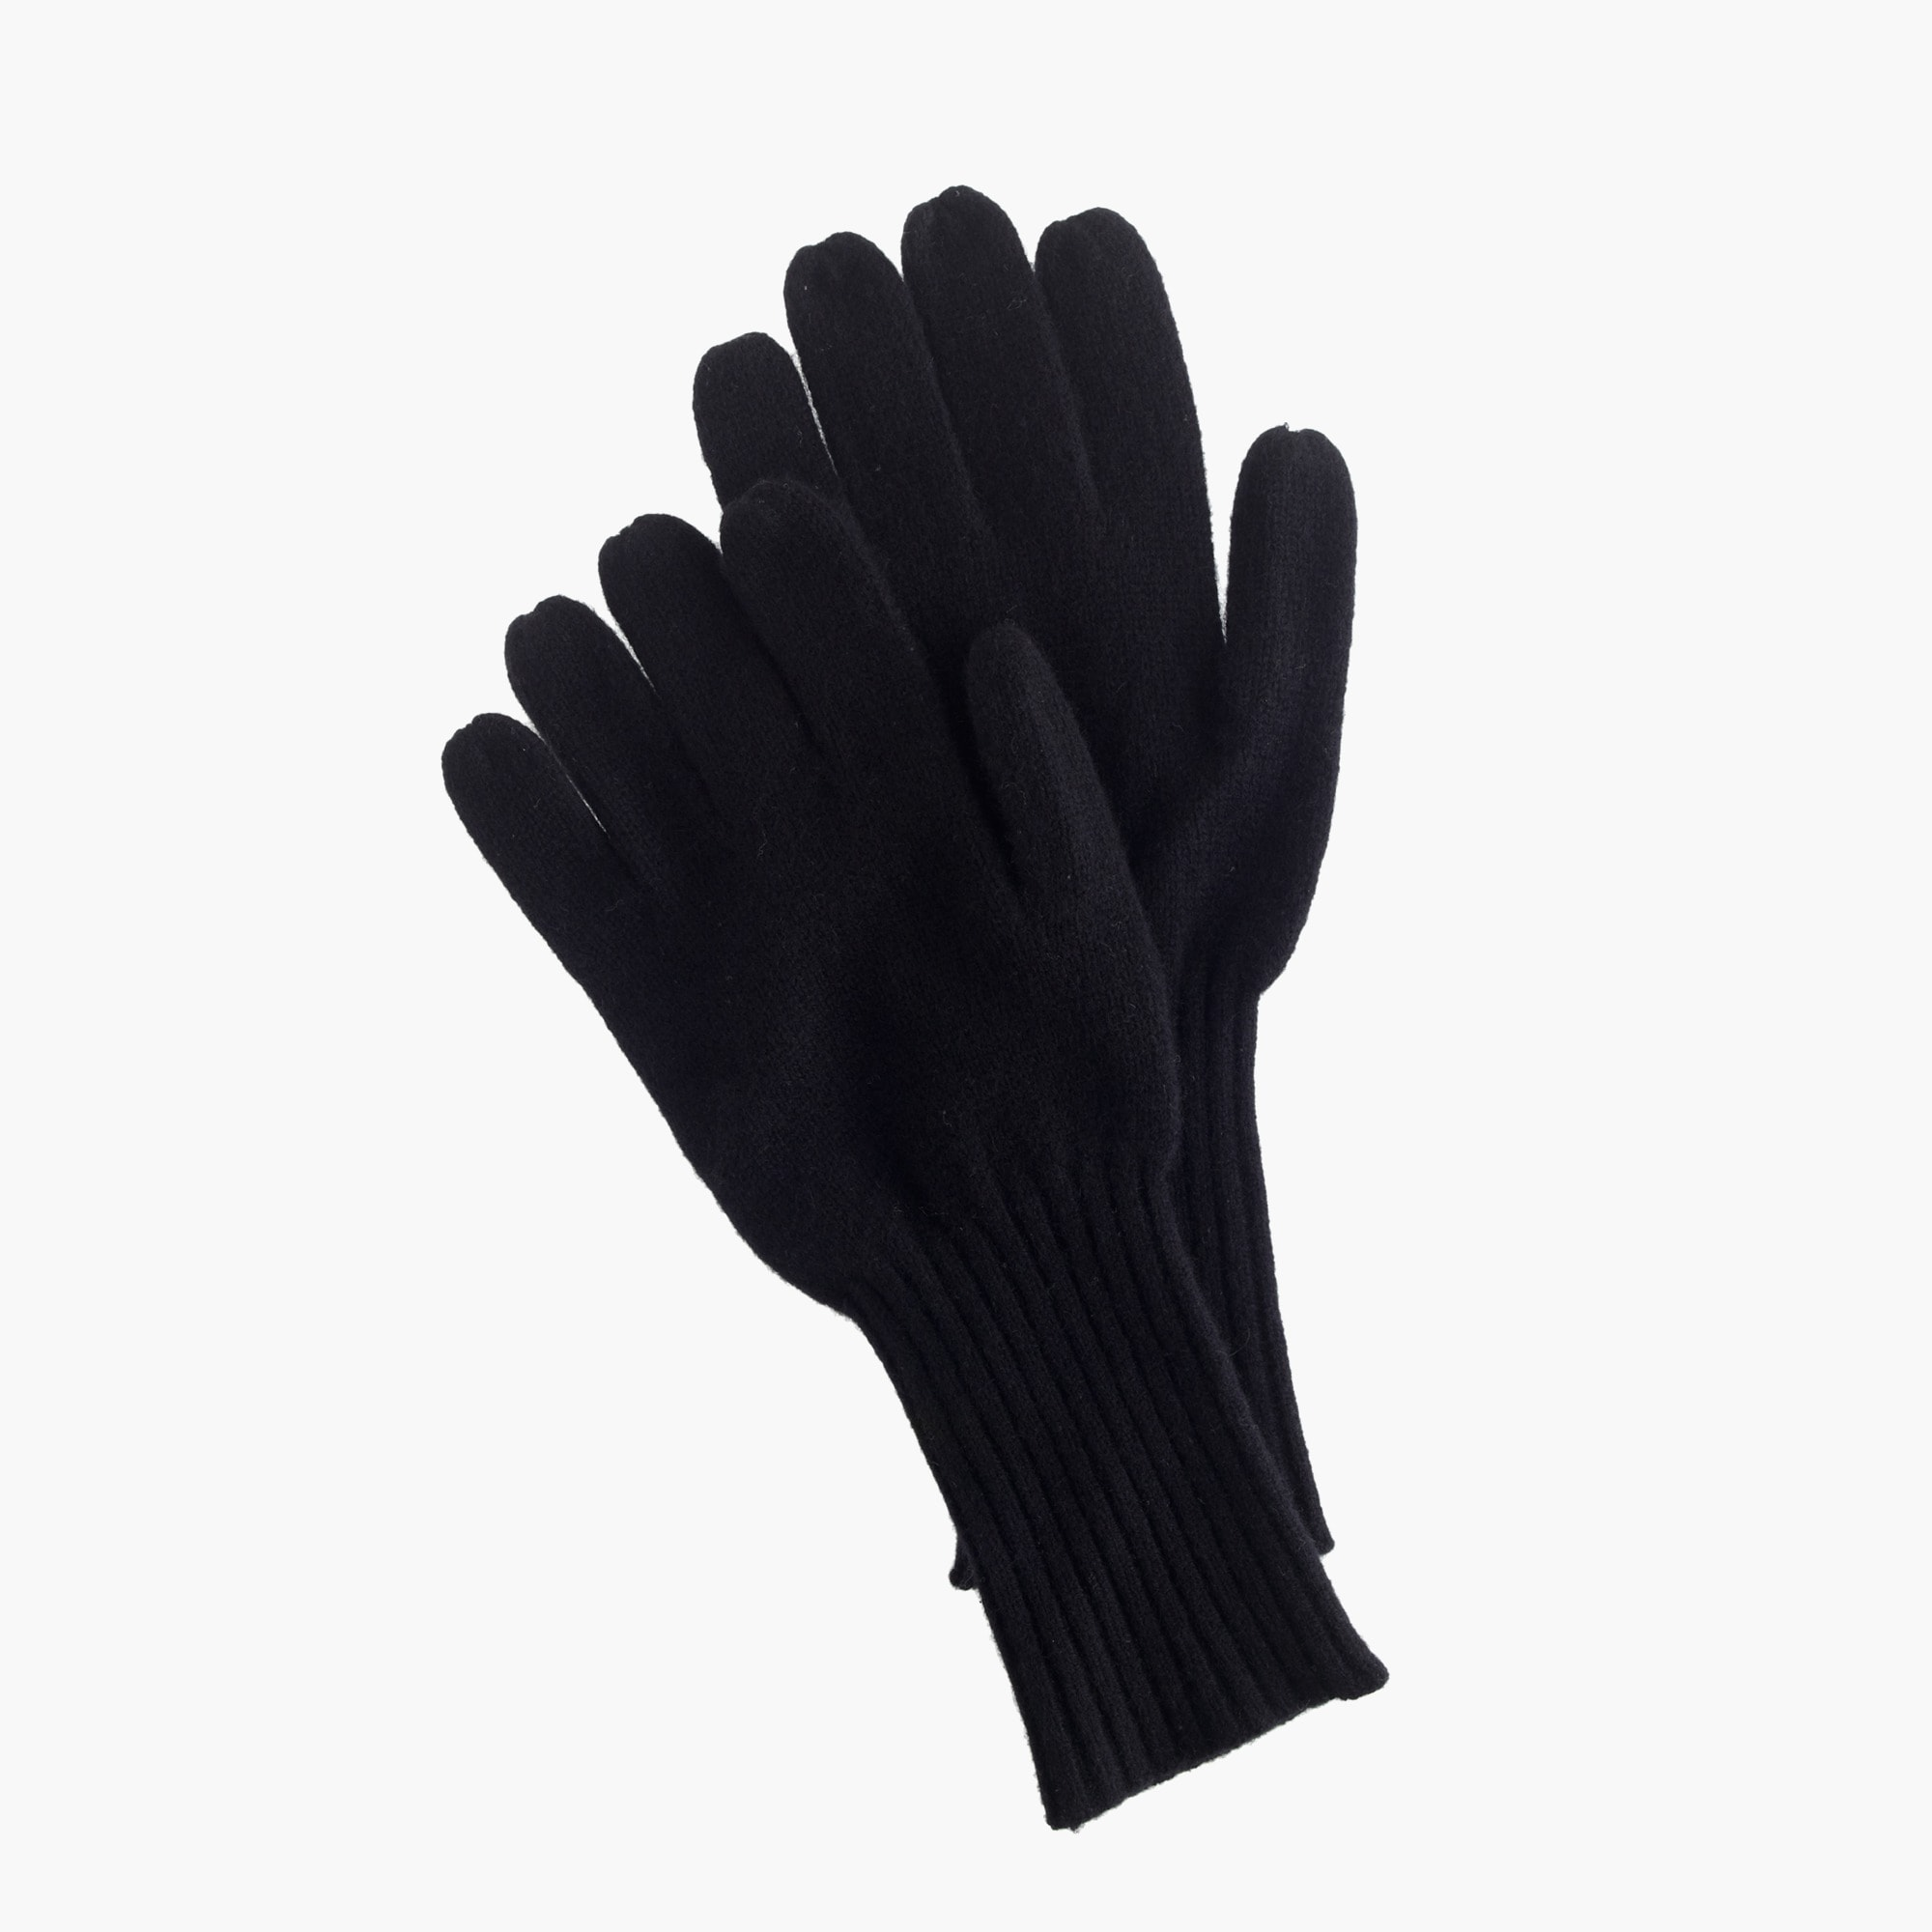 cashmere gloves : women's winter gloves